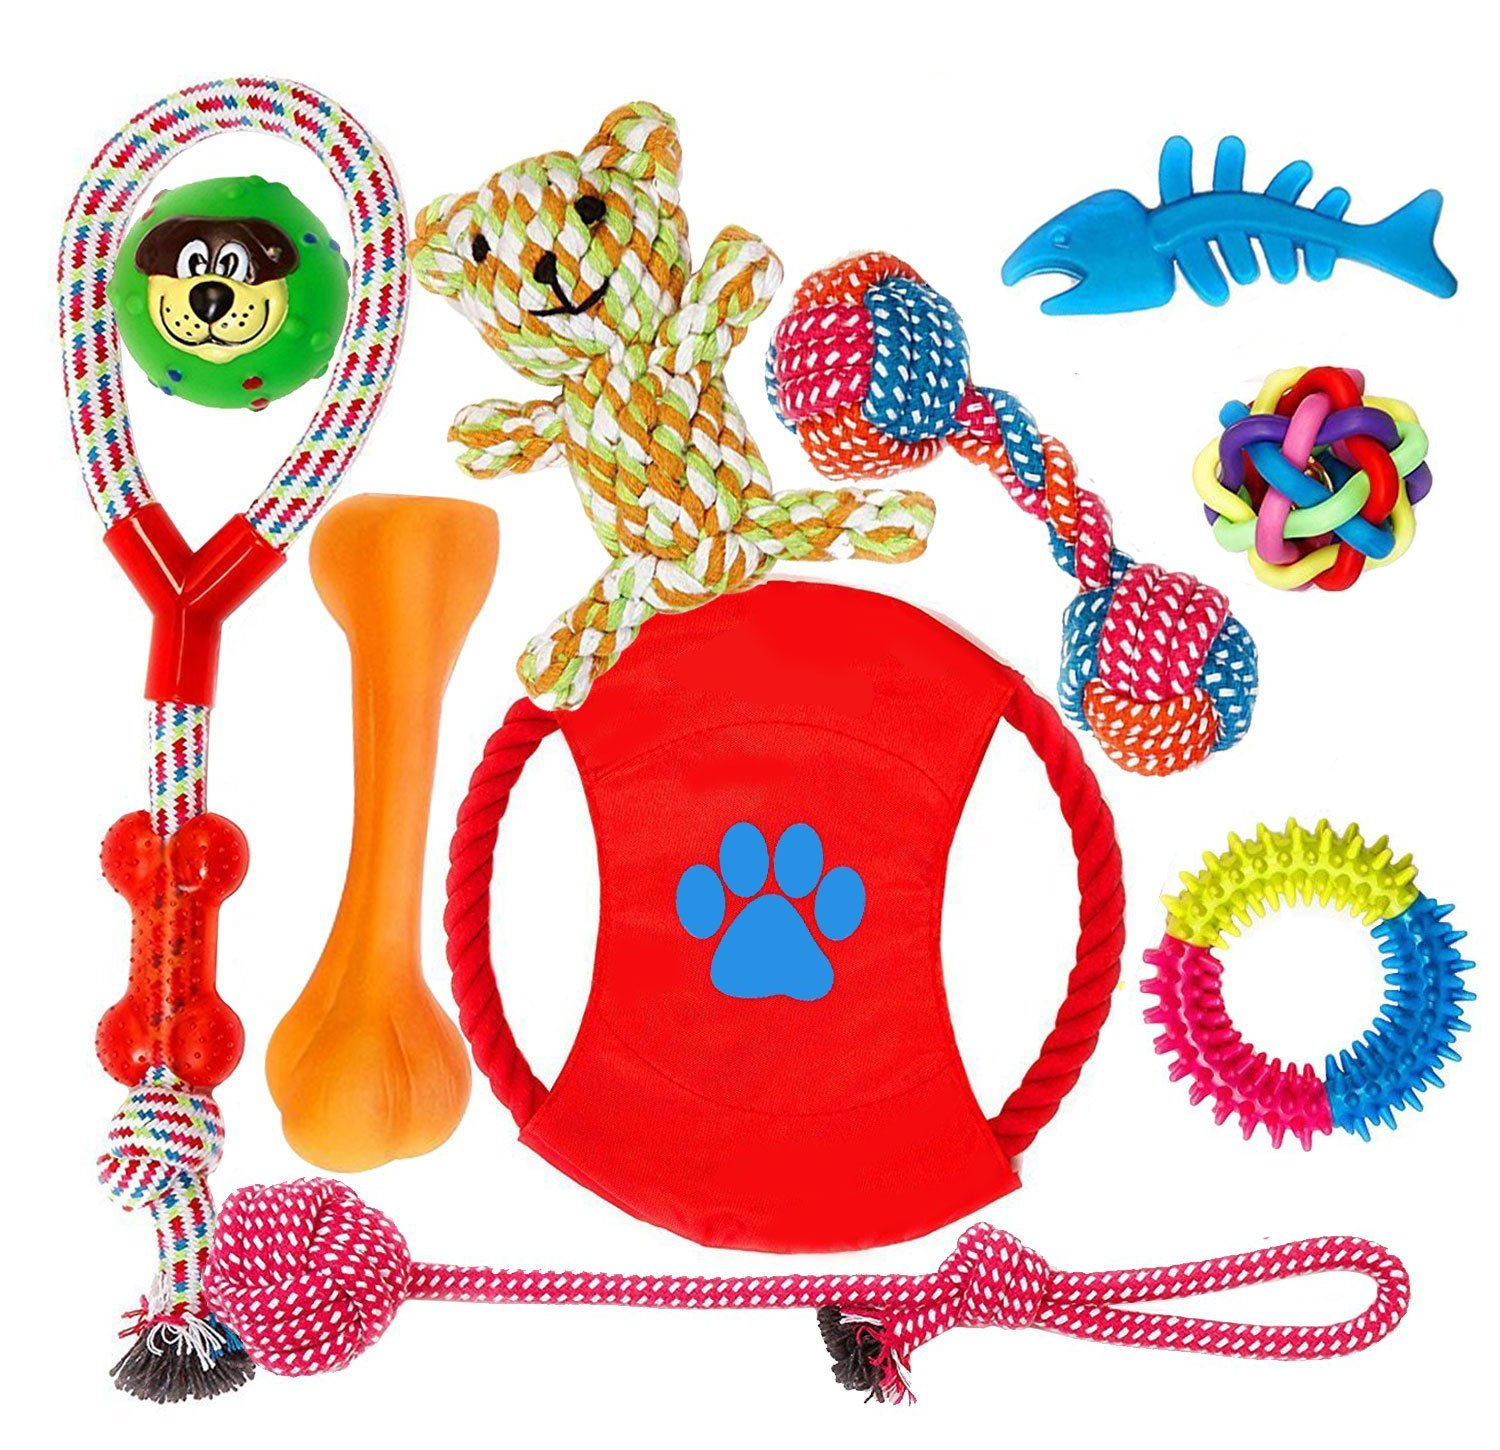 FONPOO Dog Toys Aggressive Chewers Dog Rope Squeaky Toys Gift Dog Chew Toy Squeak Ball Ring Dog Toys Set Safe Medium Doggies Small Puppies